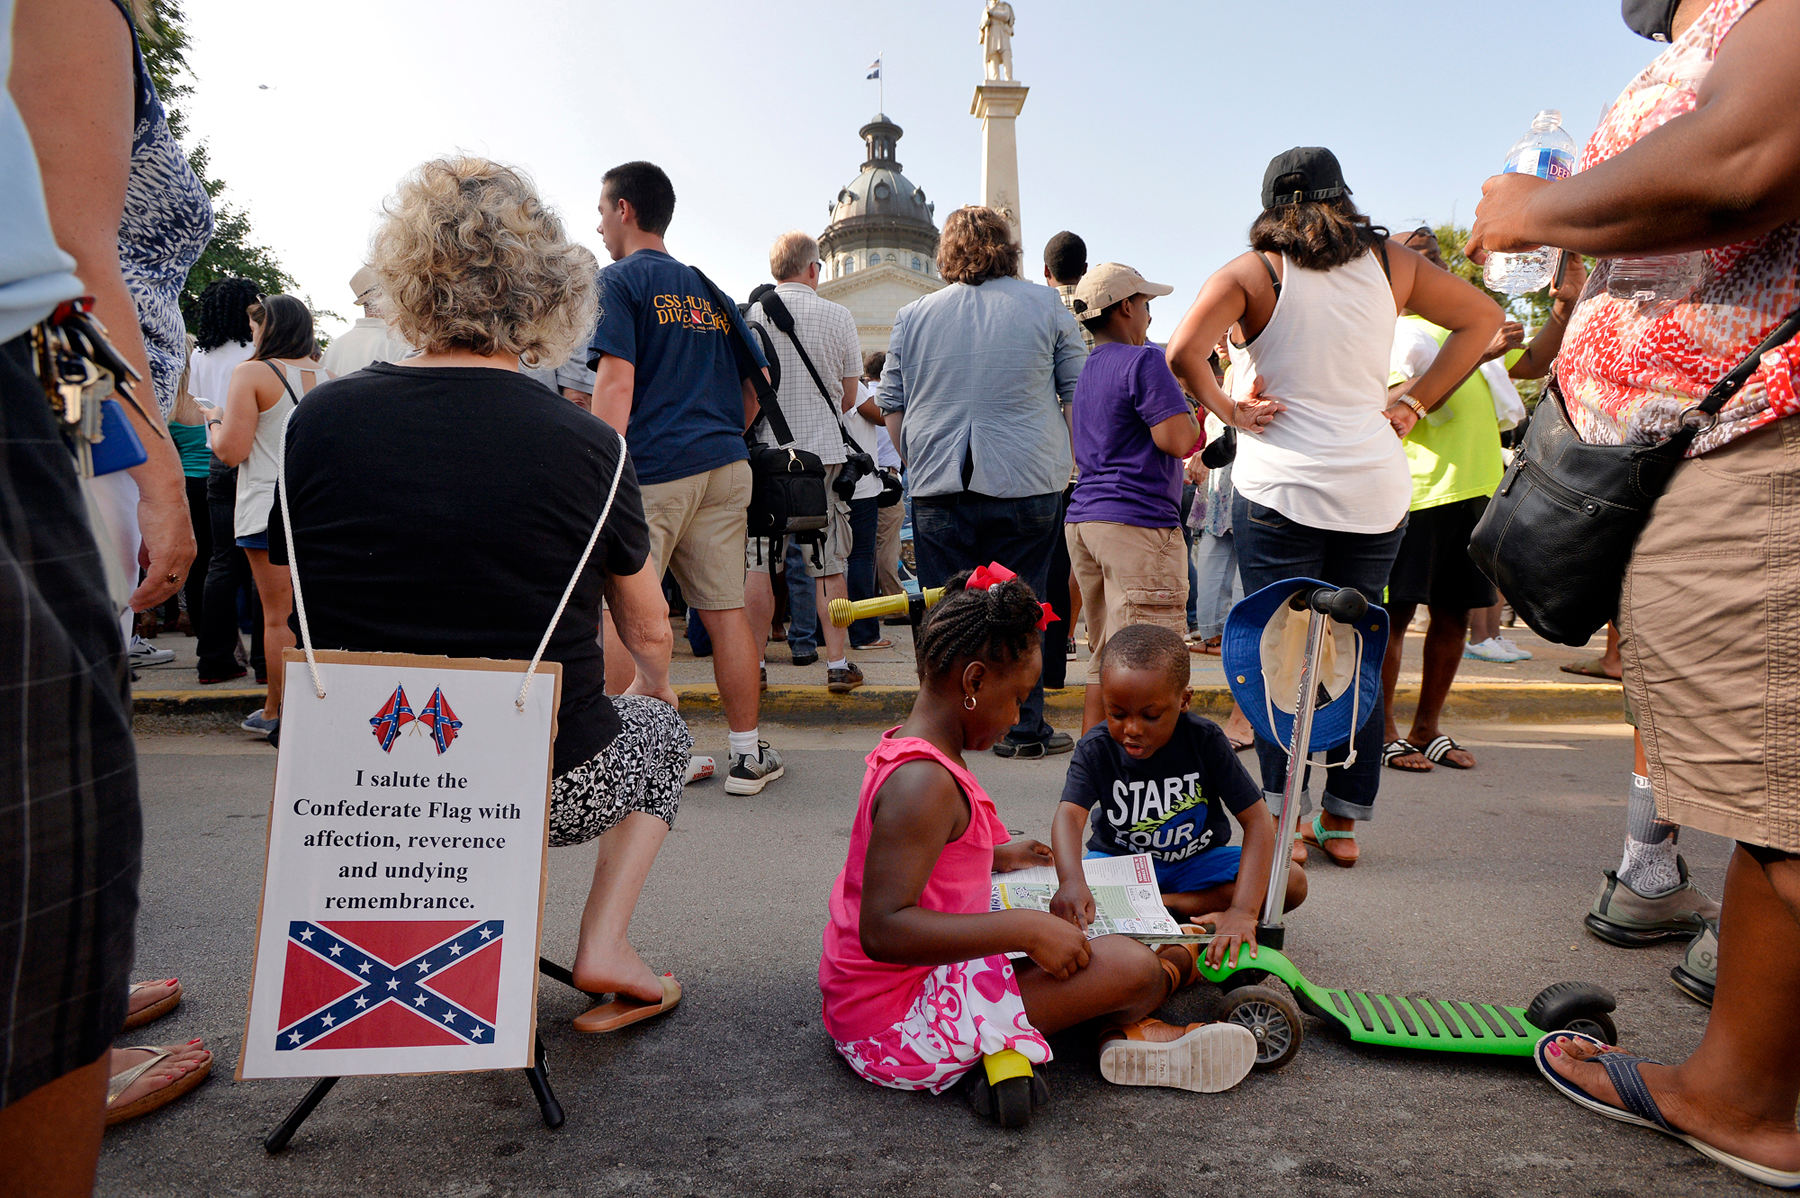 First Place | Multiple PhotosMykal McEldowney, The Greenville NewsFrom left, Charlene Stoll Hale, of Lexington, S.C., wears a banner honor of her Confederate ancestors as Alana Wilson, 7, and Gracen, 5, wait for the removal of the Confederate flag from the Statehouse grounds on Friday, July 10, 2015. {quote}It's so important our children see this moment in South Carolina history,{quote} said Darnnie Carter, mother of the Wilson children.